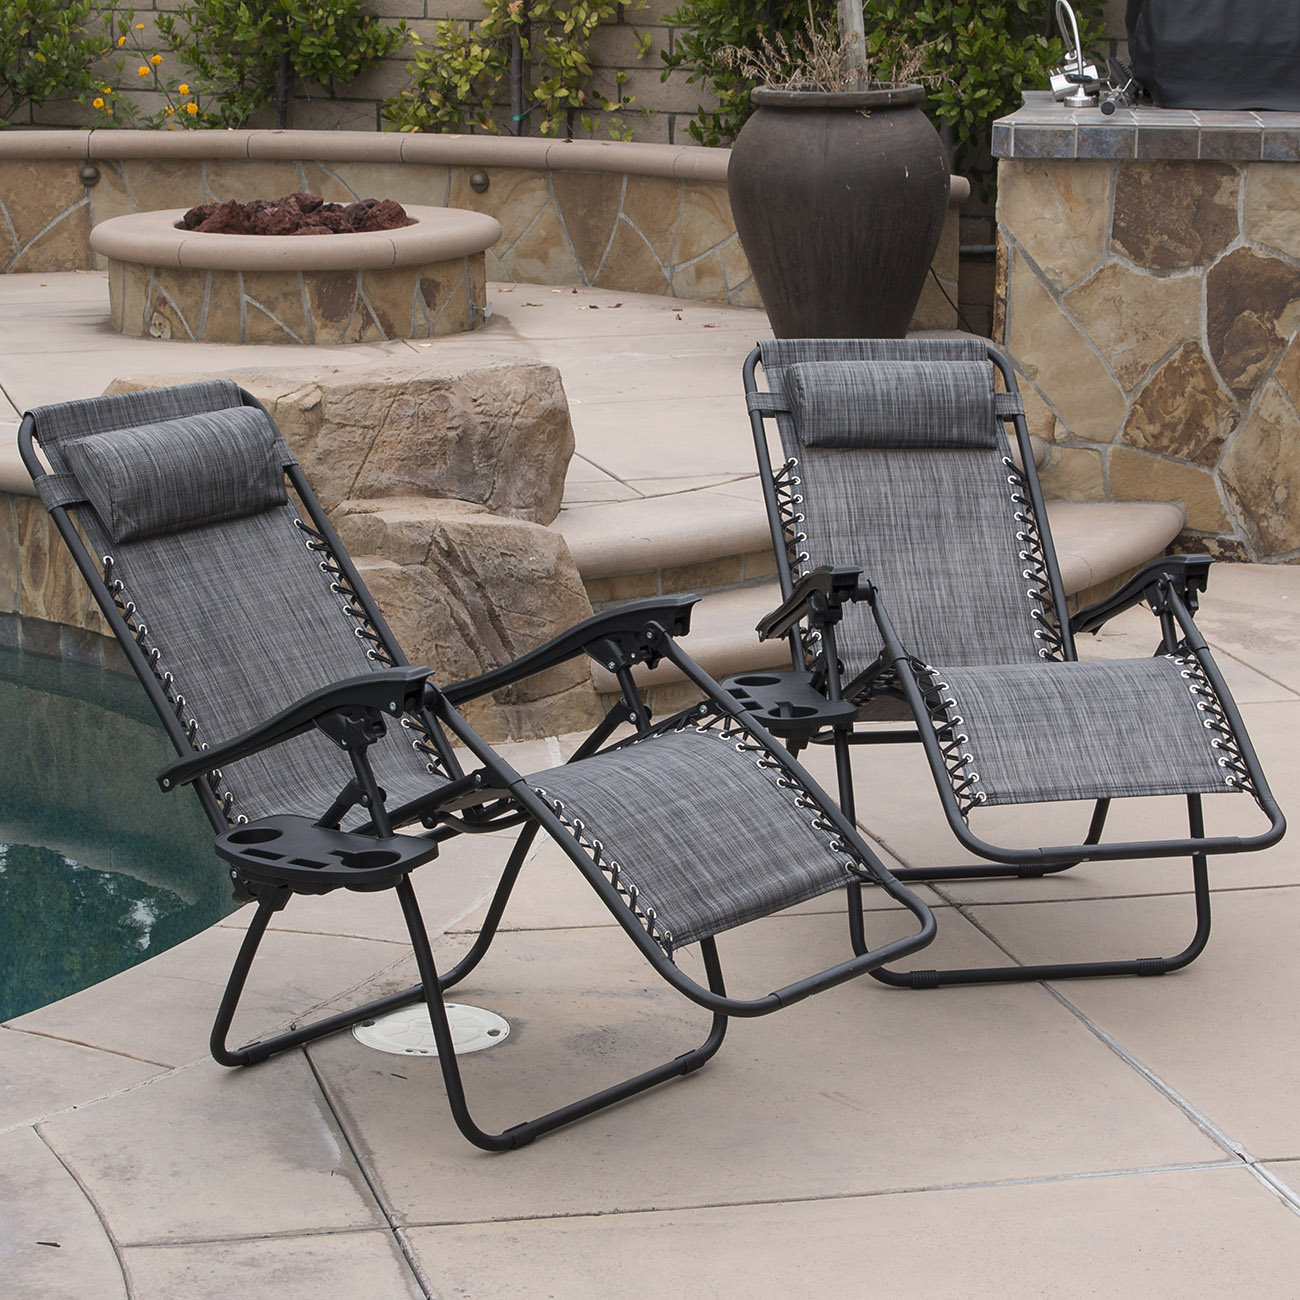 Folding outdoor lounge chair - 2 Lounge Chair Outdoor Zero Gravity Beach Patio Pool Yard Folding Recliner Gray